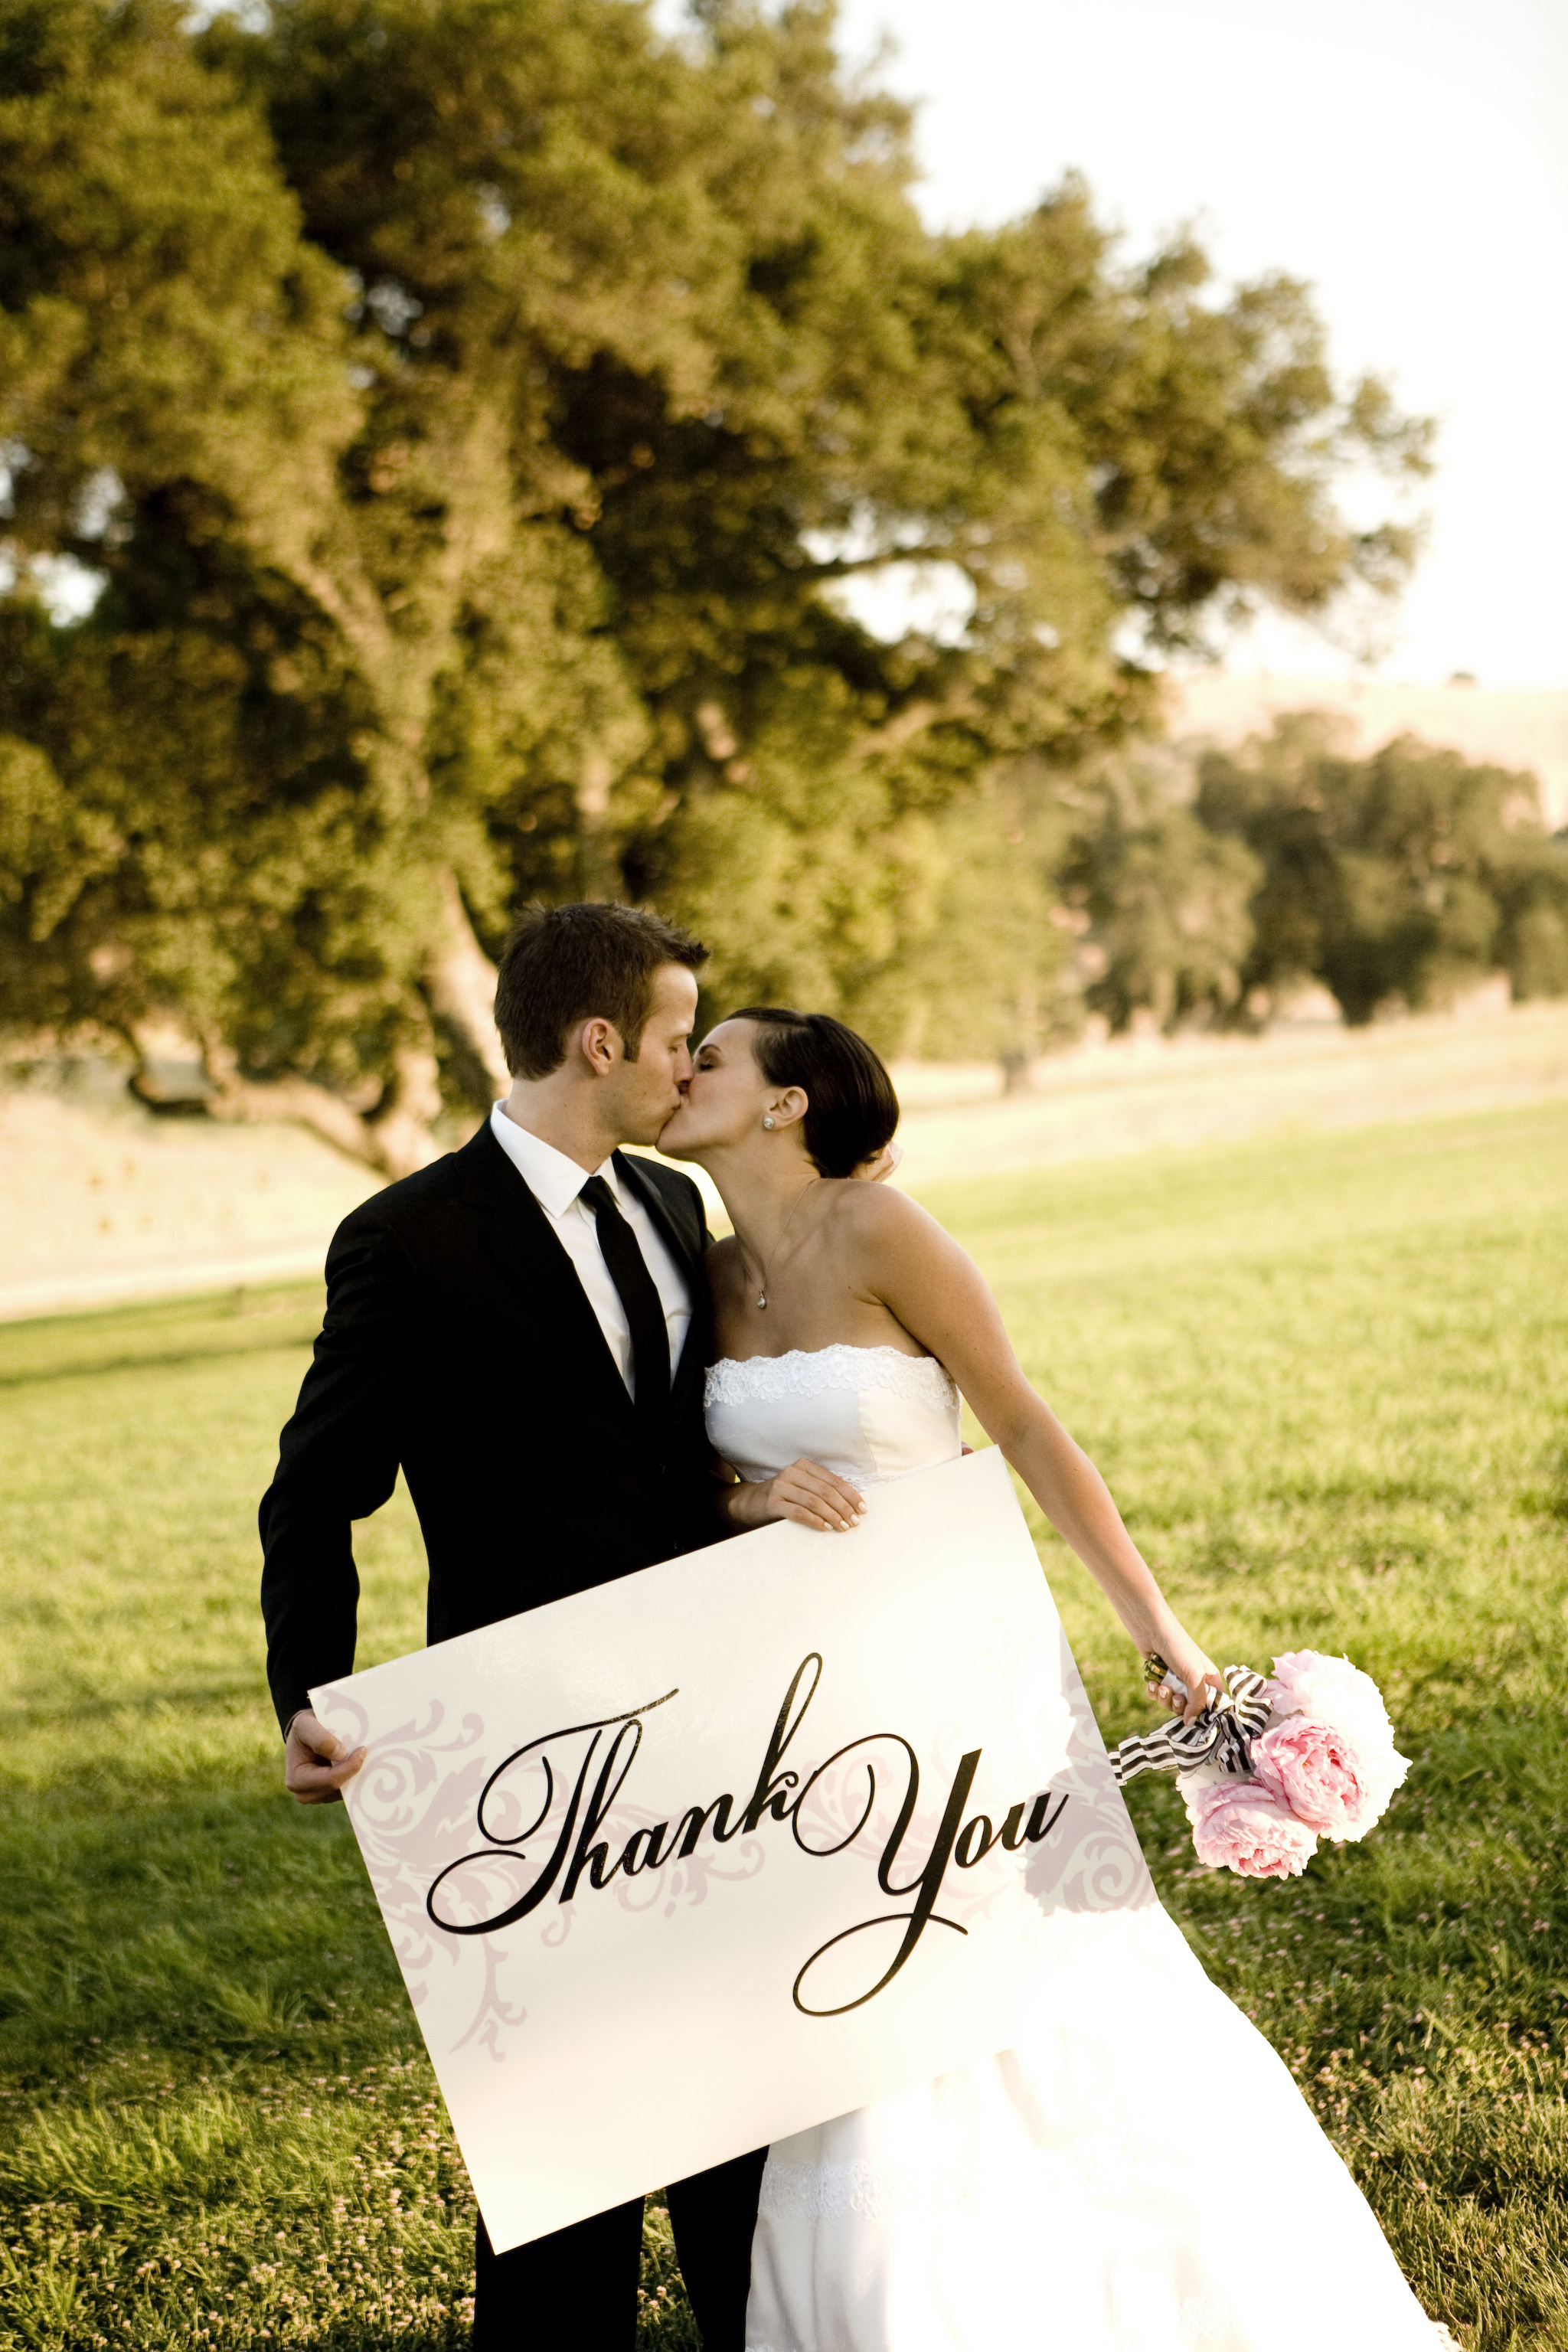 DIY, Reception, Flowers & Decor, white, pink, black, And, You, Thank, Stationary, Crossroads, A taylor made wedding